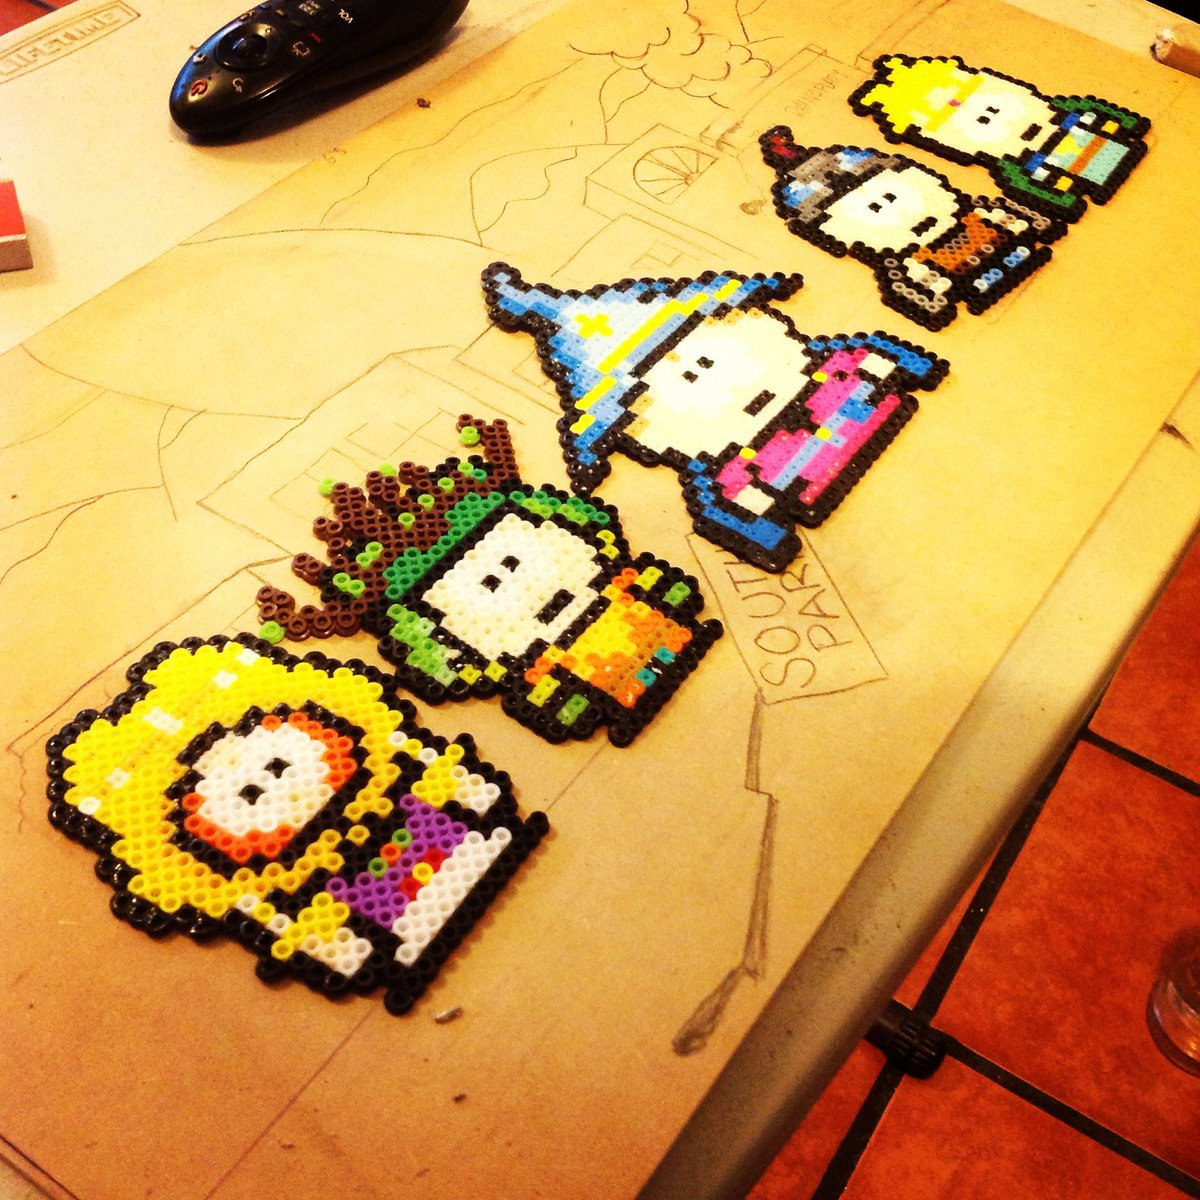 Pixel Destroyer Manu On Twitter South Park The Stick Of Truth Uno De Mis Rpgs Favoritos Pixelart Perlerbeads Perlerart Southpark Stickoftruth Kyle Stan Cartman Kenny Princesskenny Butters Ubisoft Obsidianentertainment